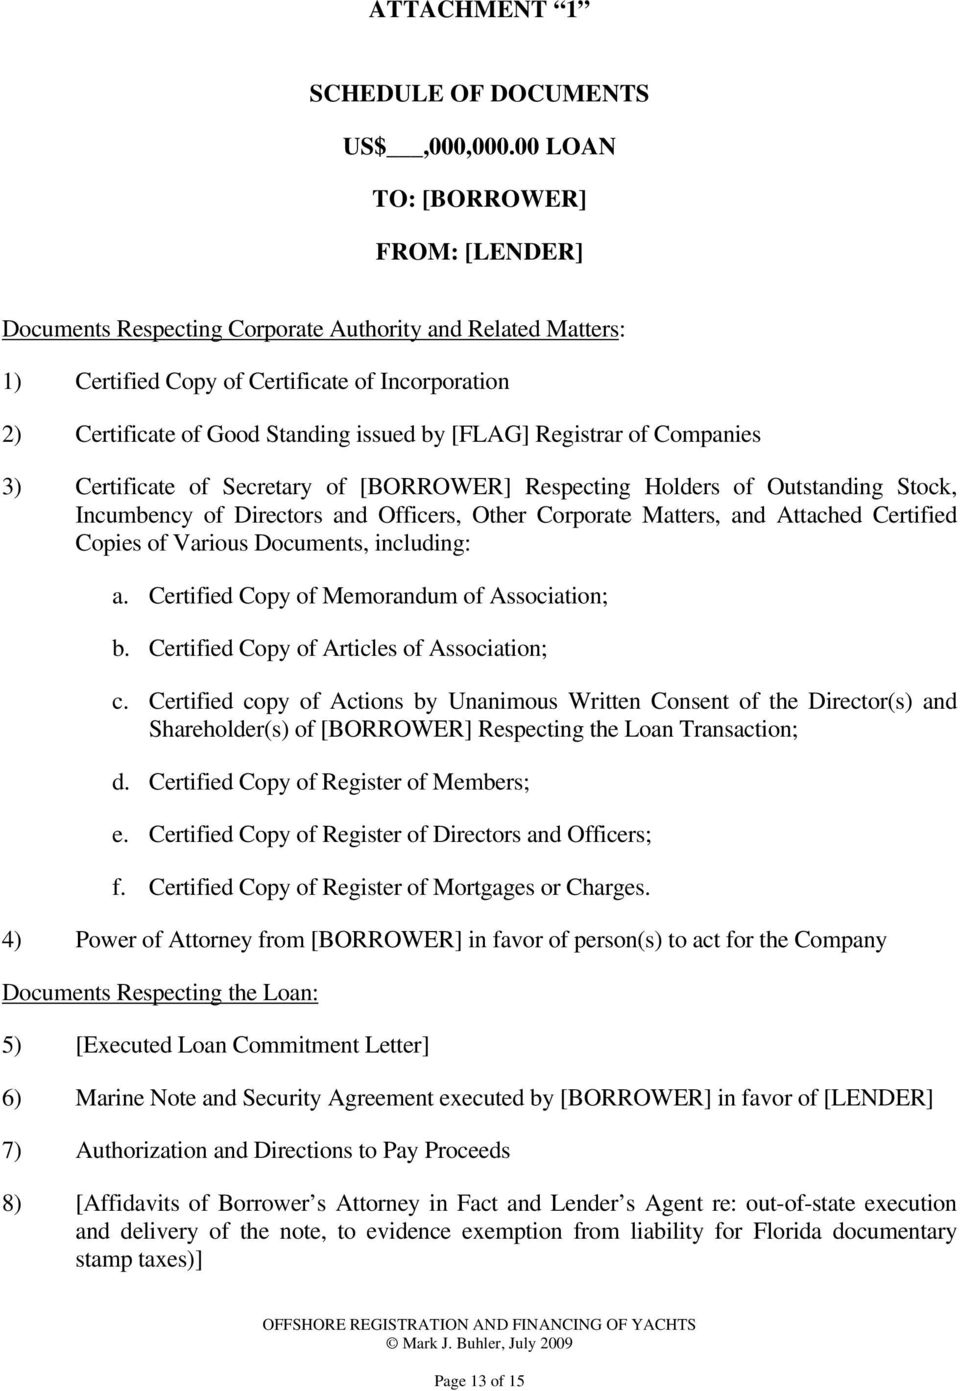 Florida Documentary Stamp Taxes Page 13 Of 15 Registrar Companies 3 Certificate Secretary BORROWER Respecting Holders